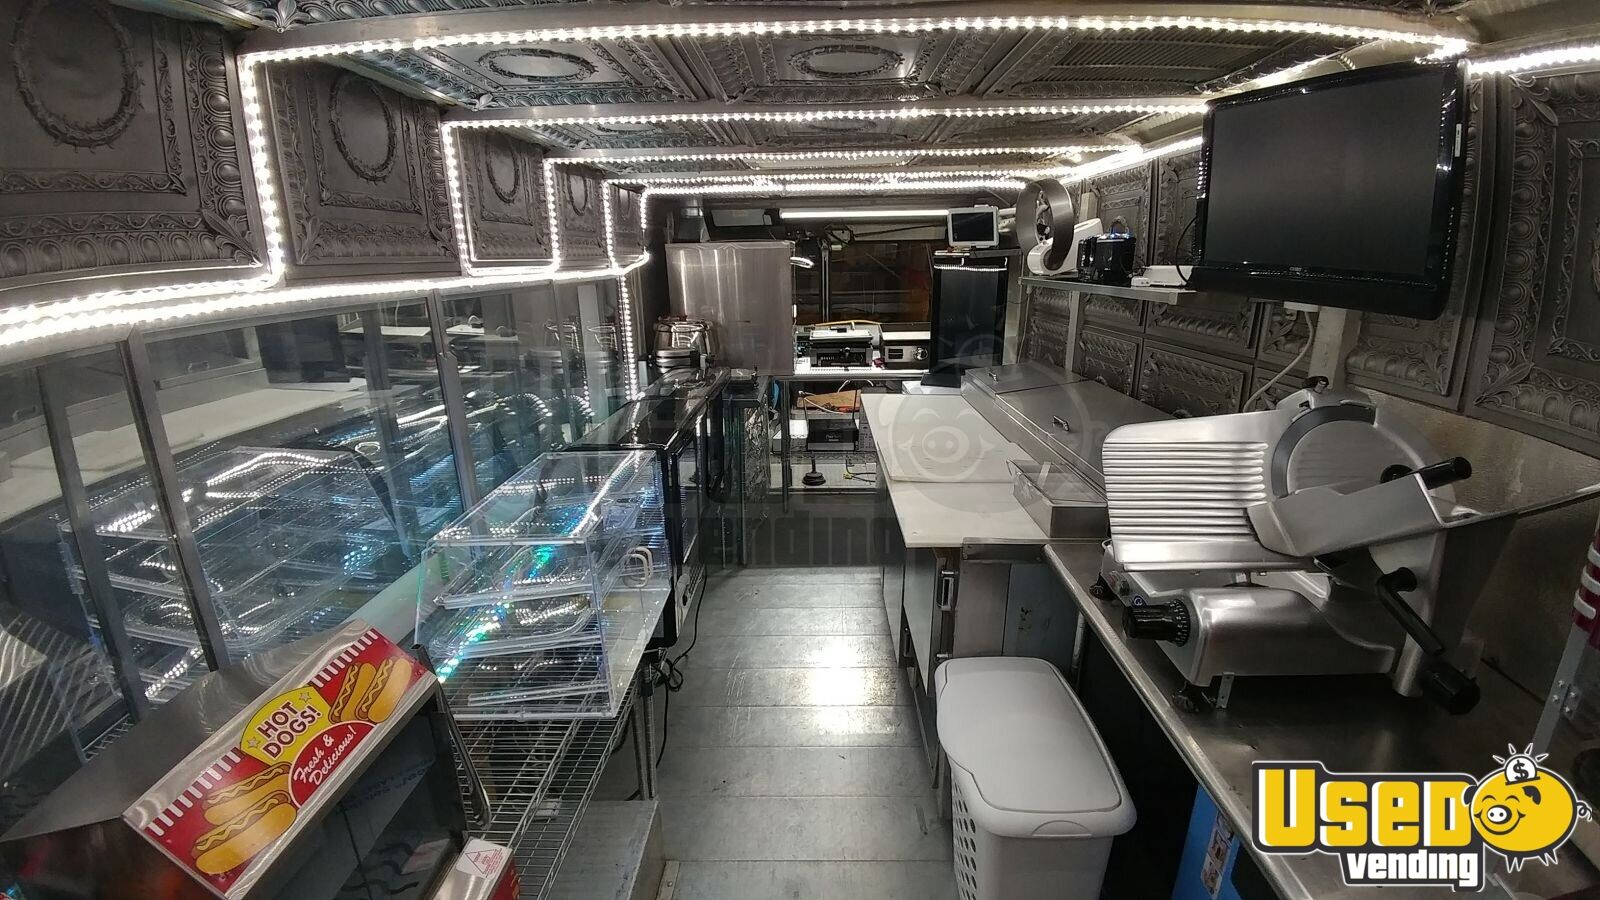 1990 Gmcbox Truck All-purpose Food Truck Hot Dog Warmer Pennsylvania Diesel Engine for Sale - 11